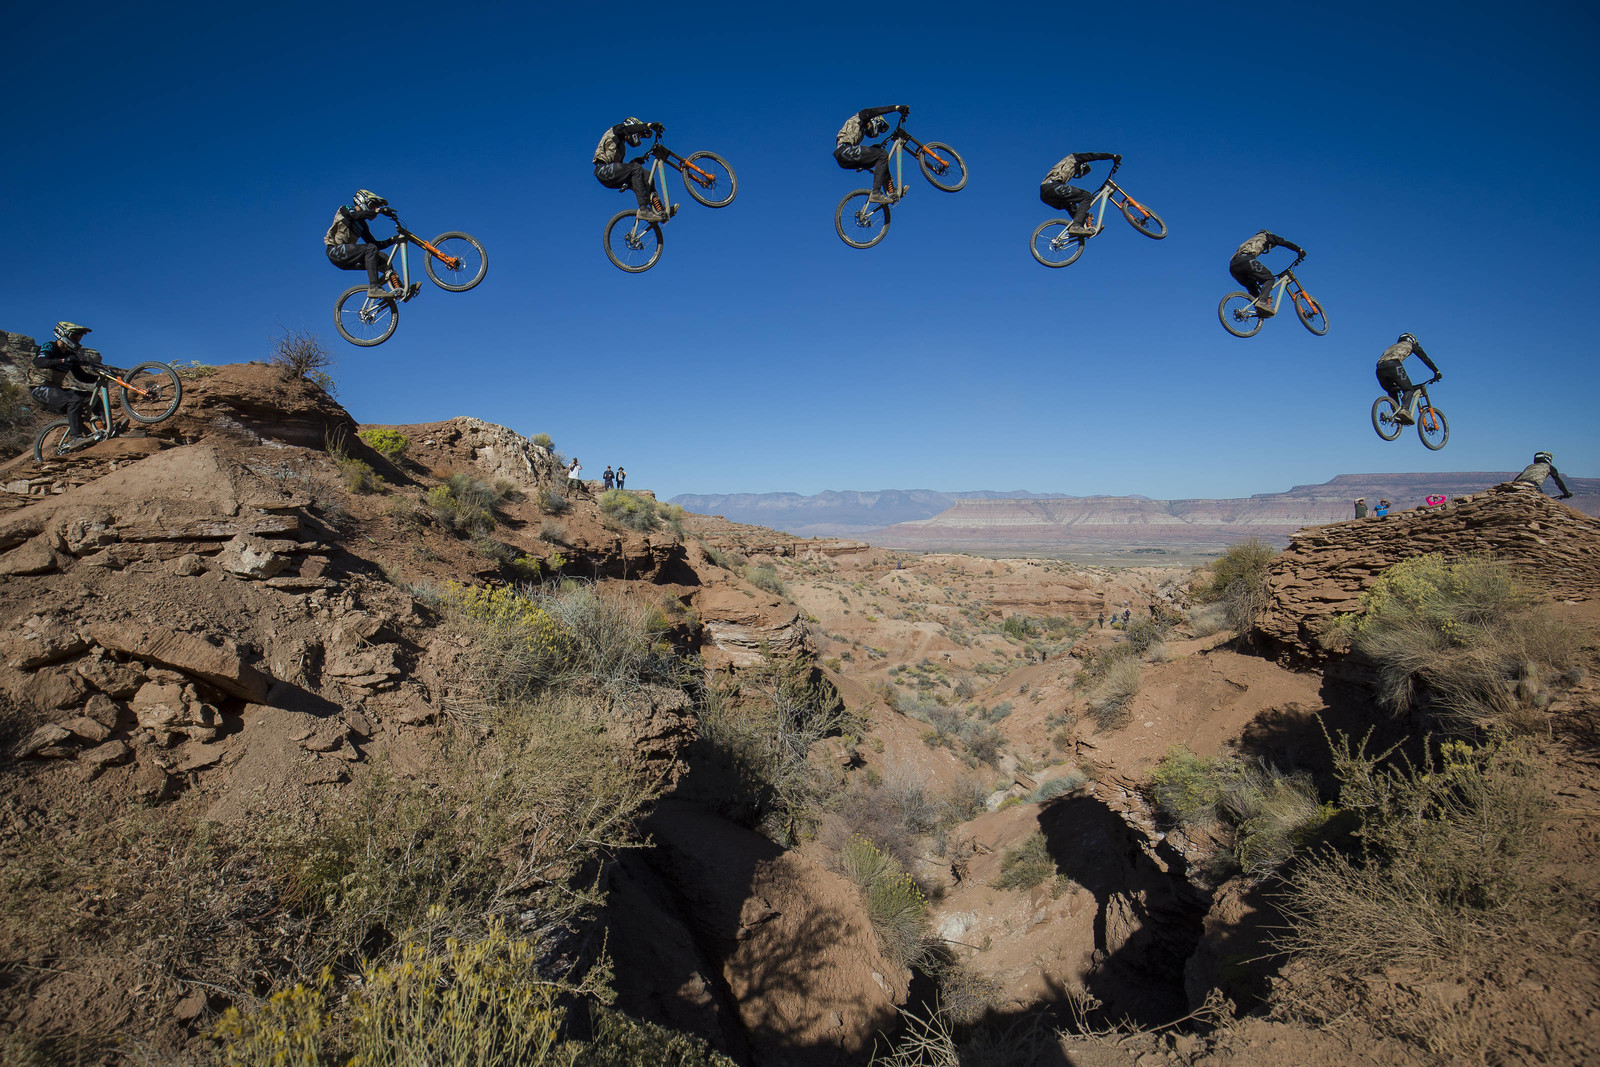 Reed Boggs Sequence - Red Bull Rampage 2017 Practice Session - Mountain Biking Pictures - Vital MTB